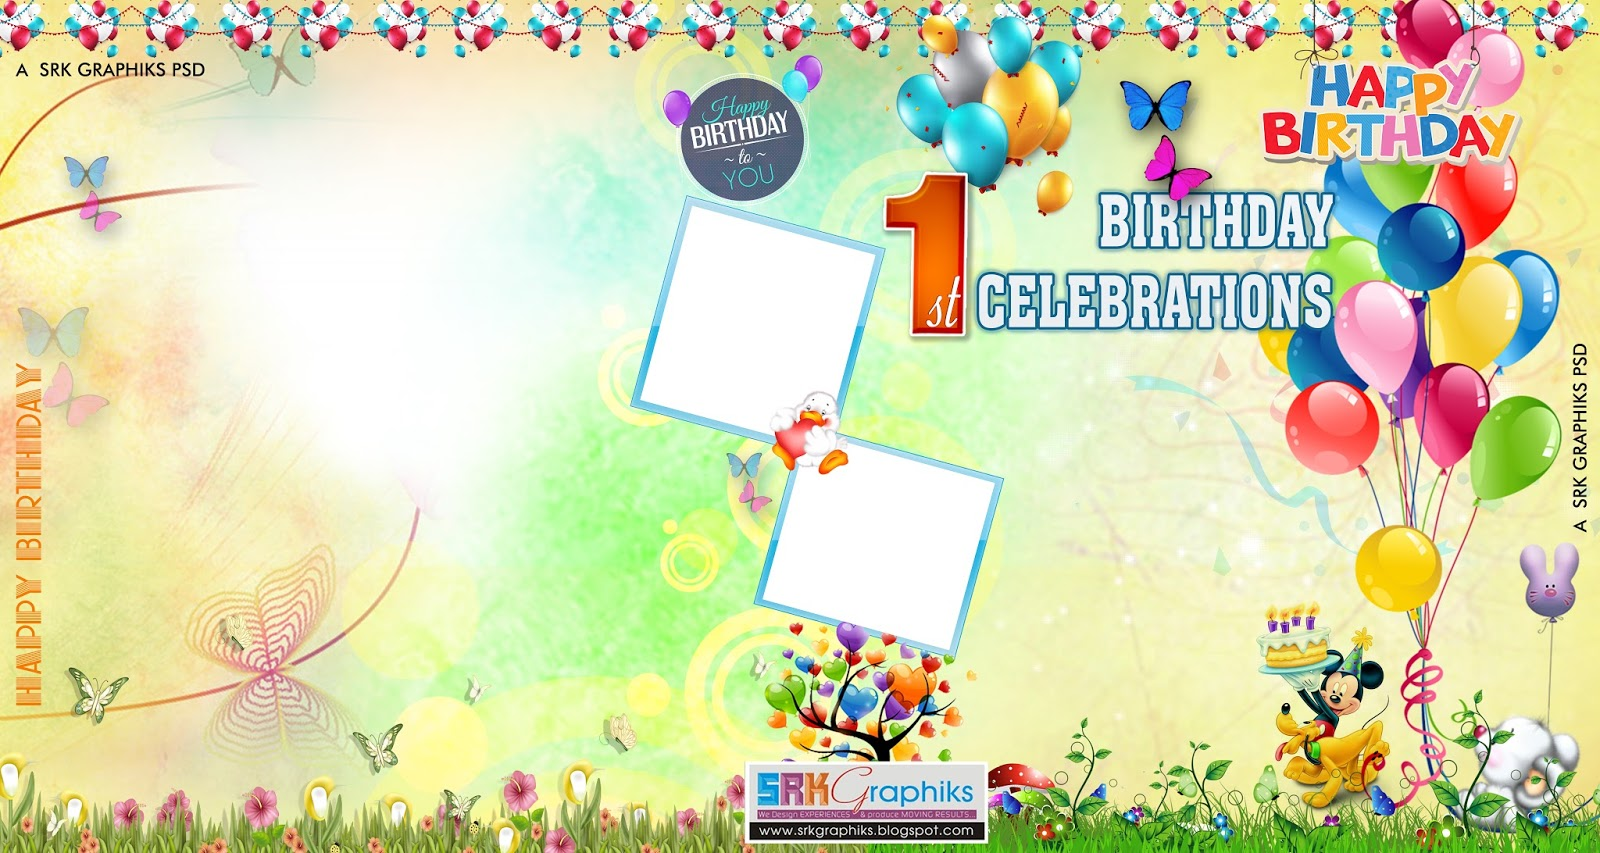 Birthday Banner Design  Happy Birthday Card Template Free Download